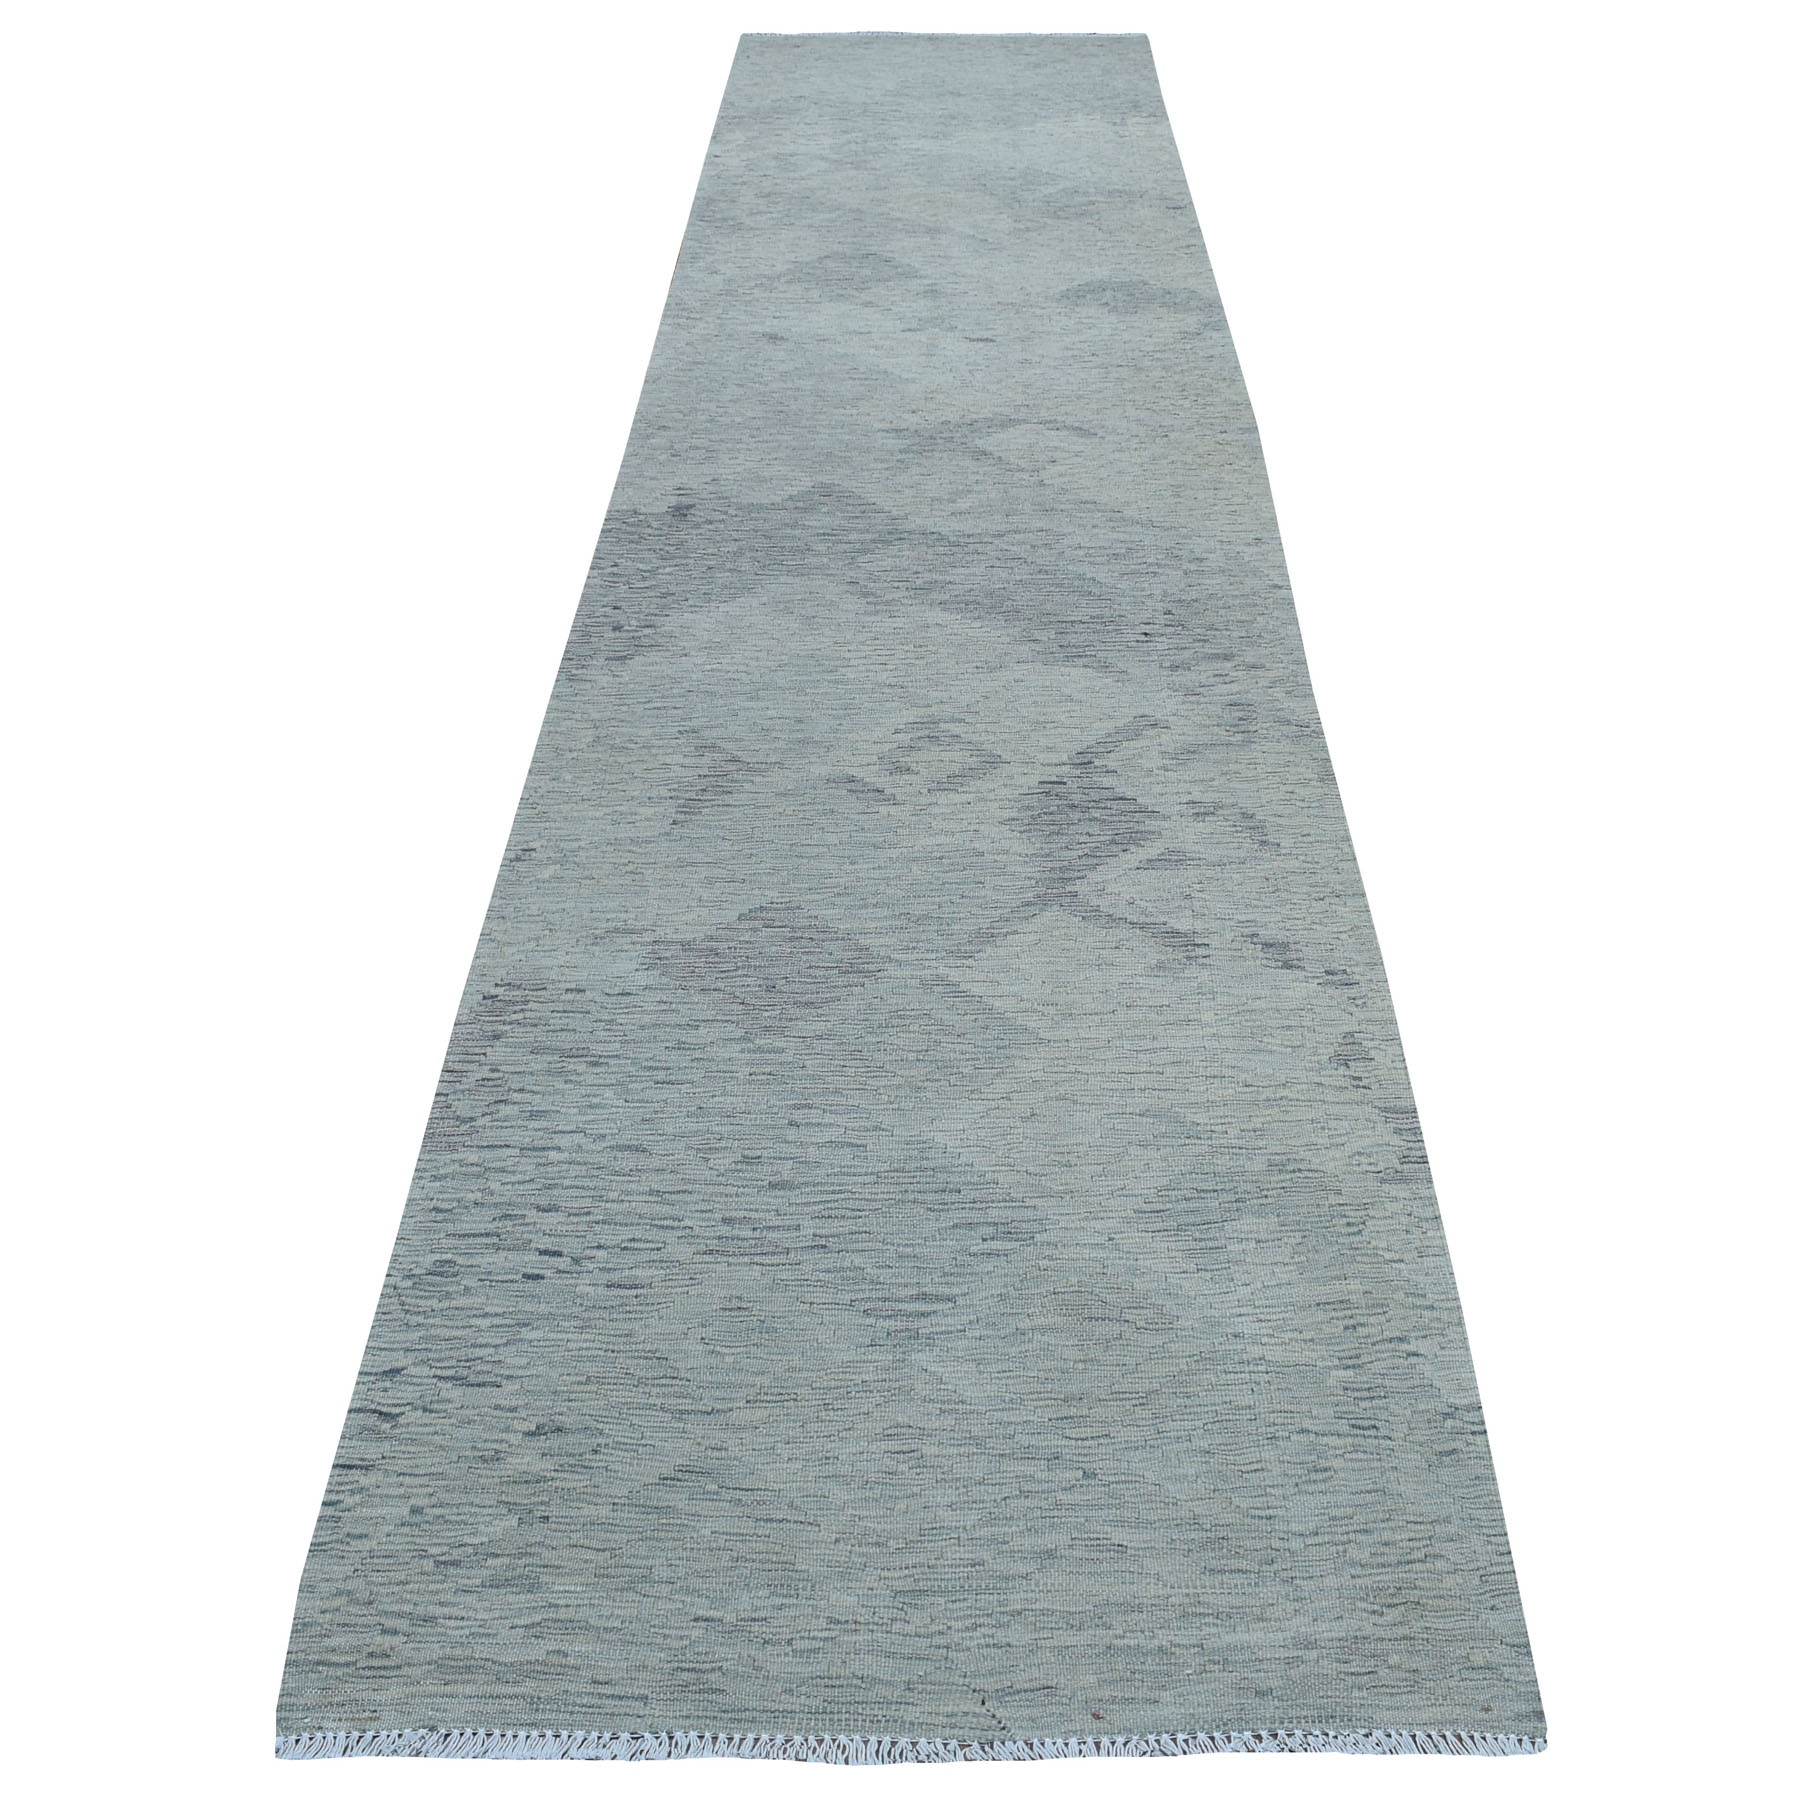 """3'1""""X14' Gray Shades Flat Weave Kilim Pure Wool Hand Woven Runner Oriental Rug moaec8a9"""